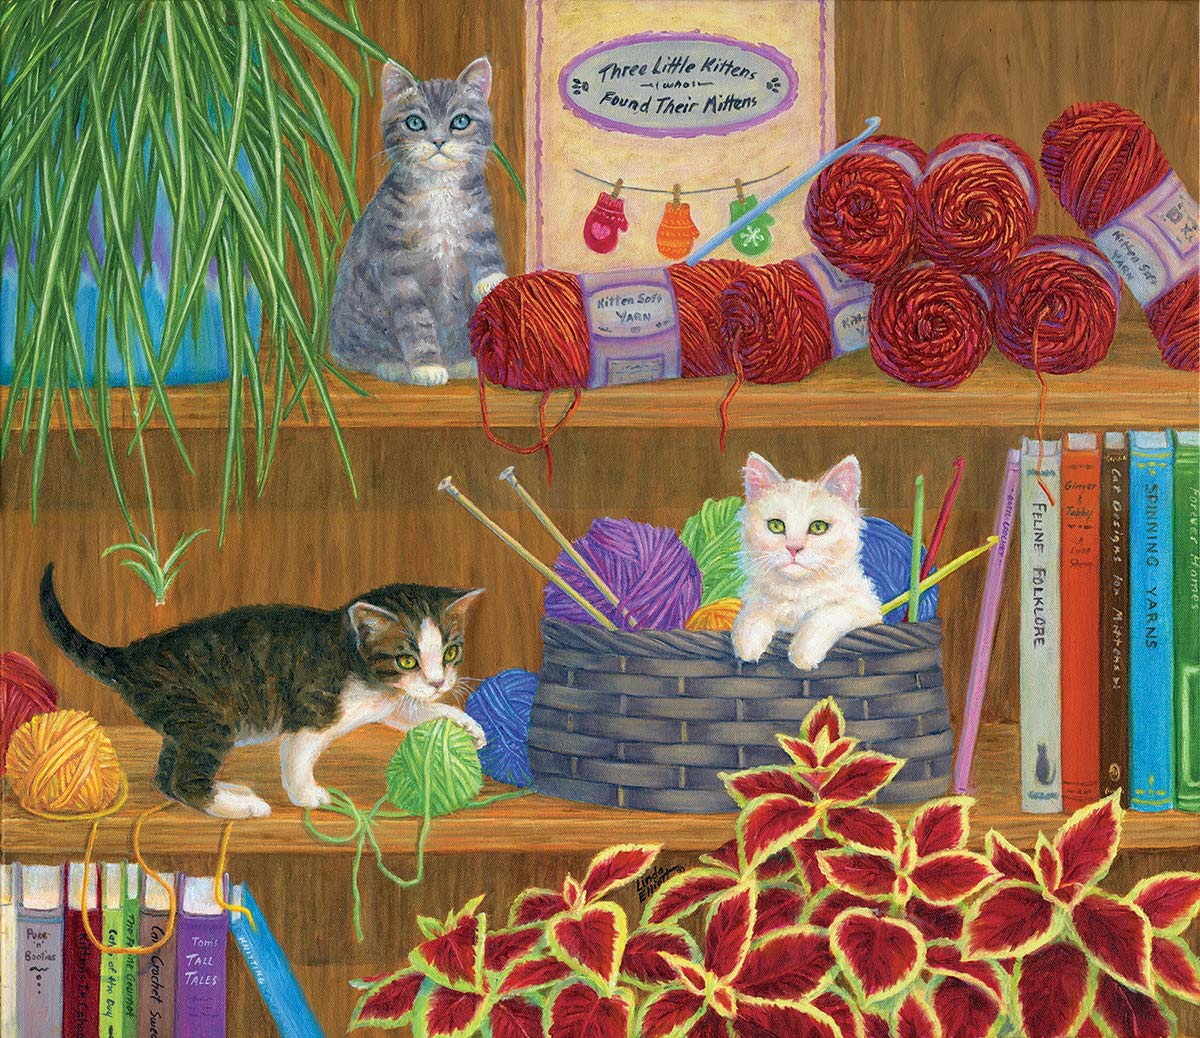 Mittens Crafts & Textile Arts Jigsaw Puzzle